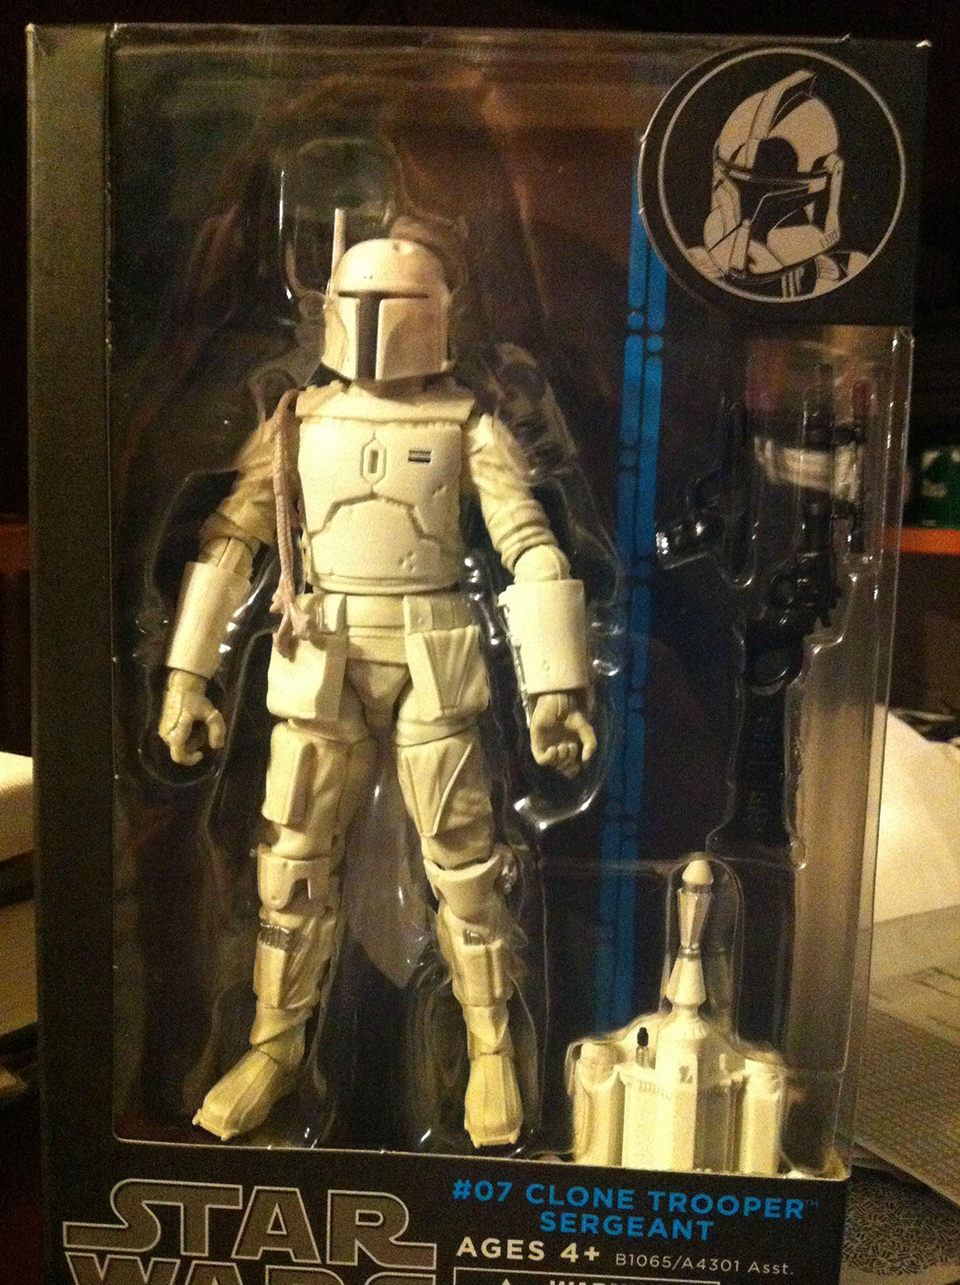 White Boba Fett Action Figure Packaged as Clone Trooper